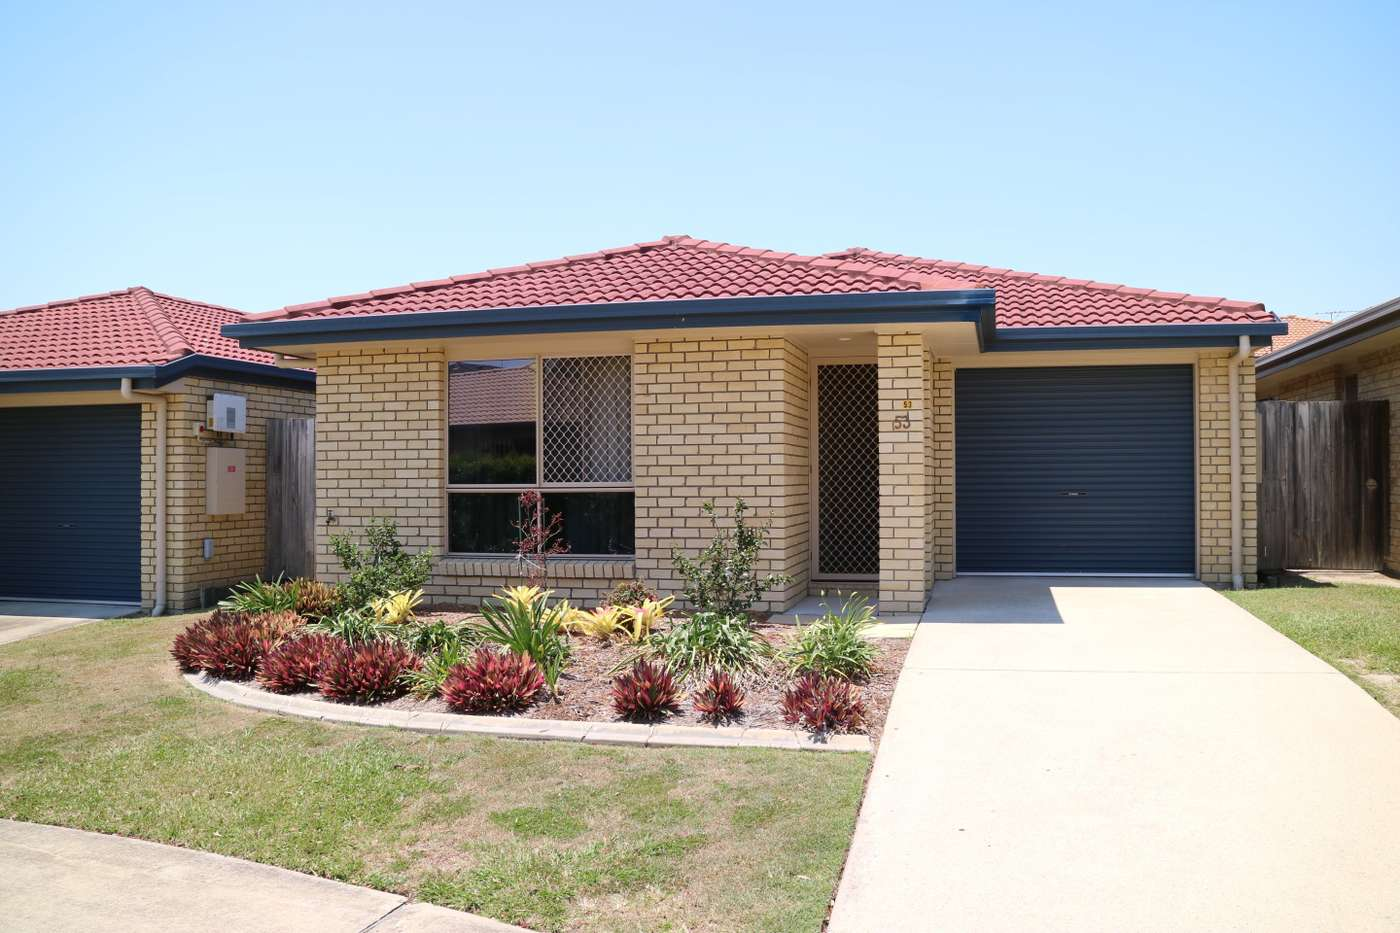 Main view of Homely villa listing, Unit 53/90 Webster Rd, Deception Bay, QLD 4508